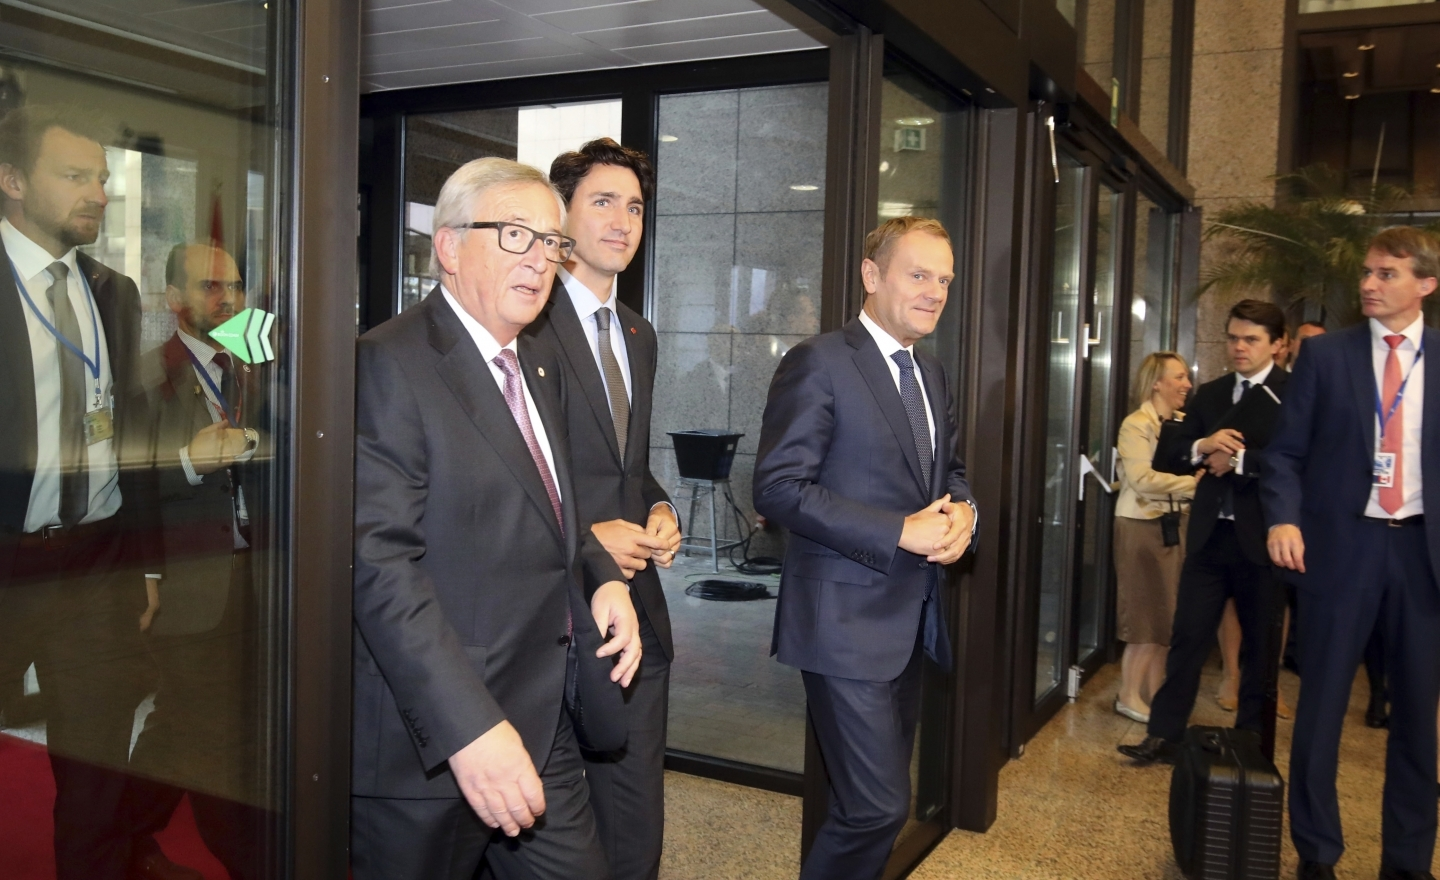 Canadian Prime Minister Justin Trudeau, left, European Commission President Jean-Claude Juncker, center, and European Council President Donald Tusk, right (AP Photo/Olivier Matthys)